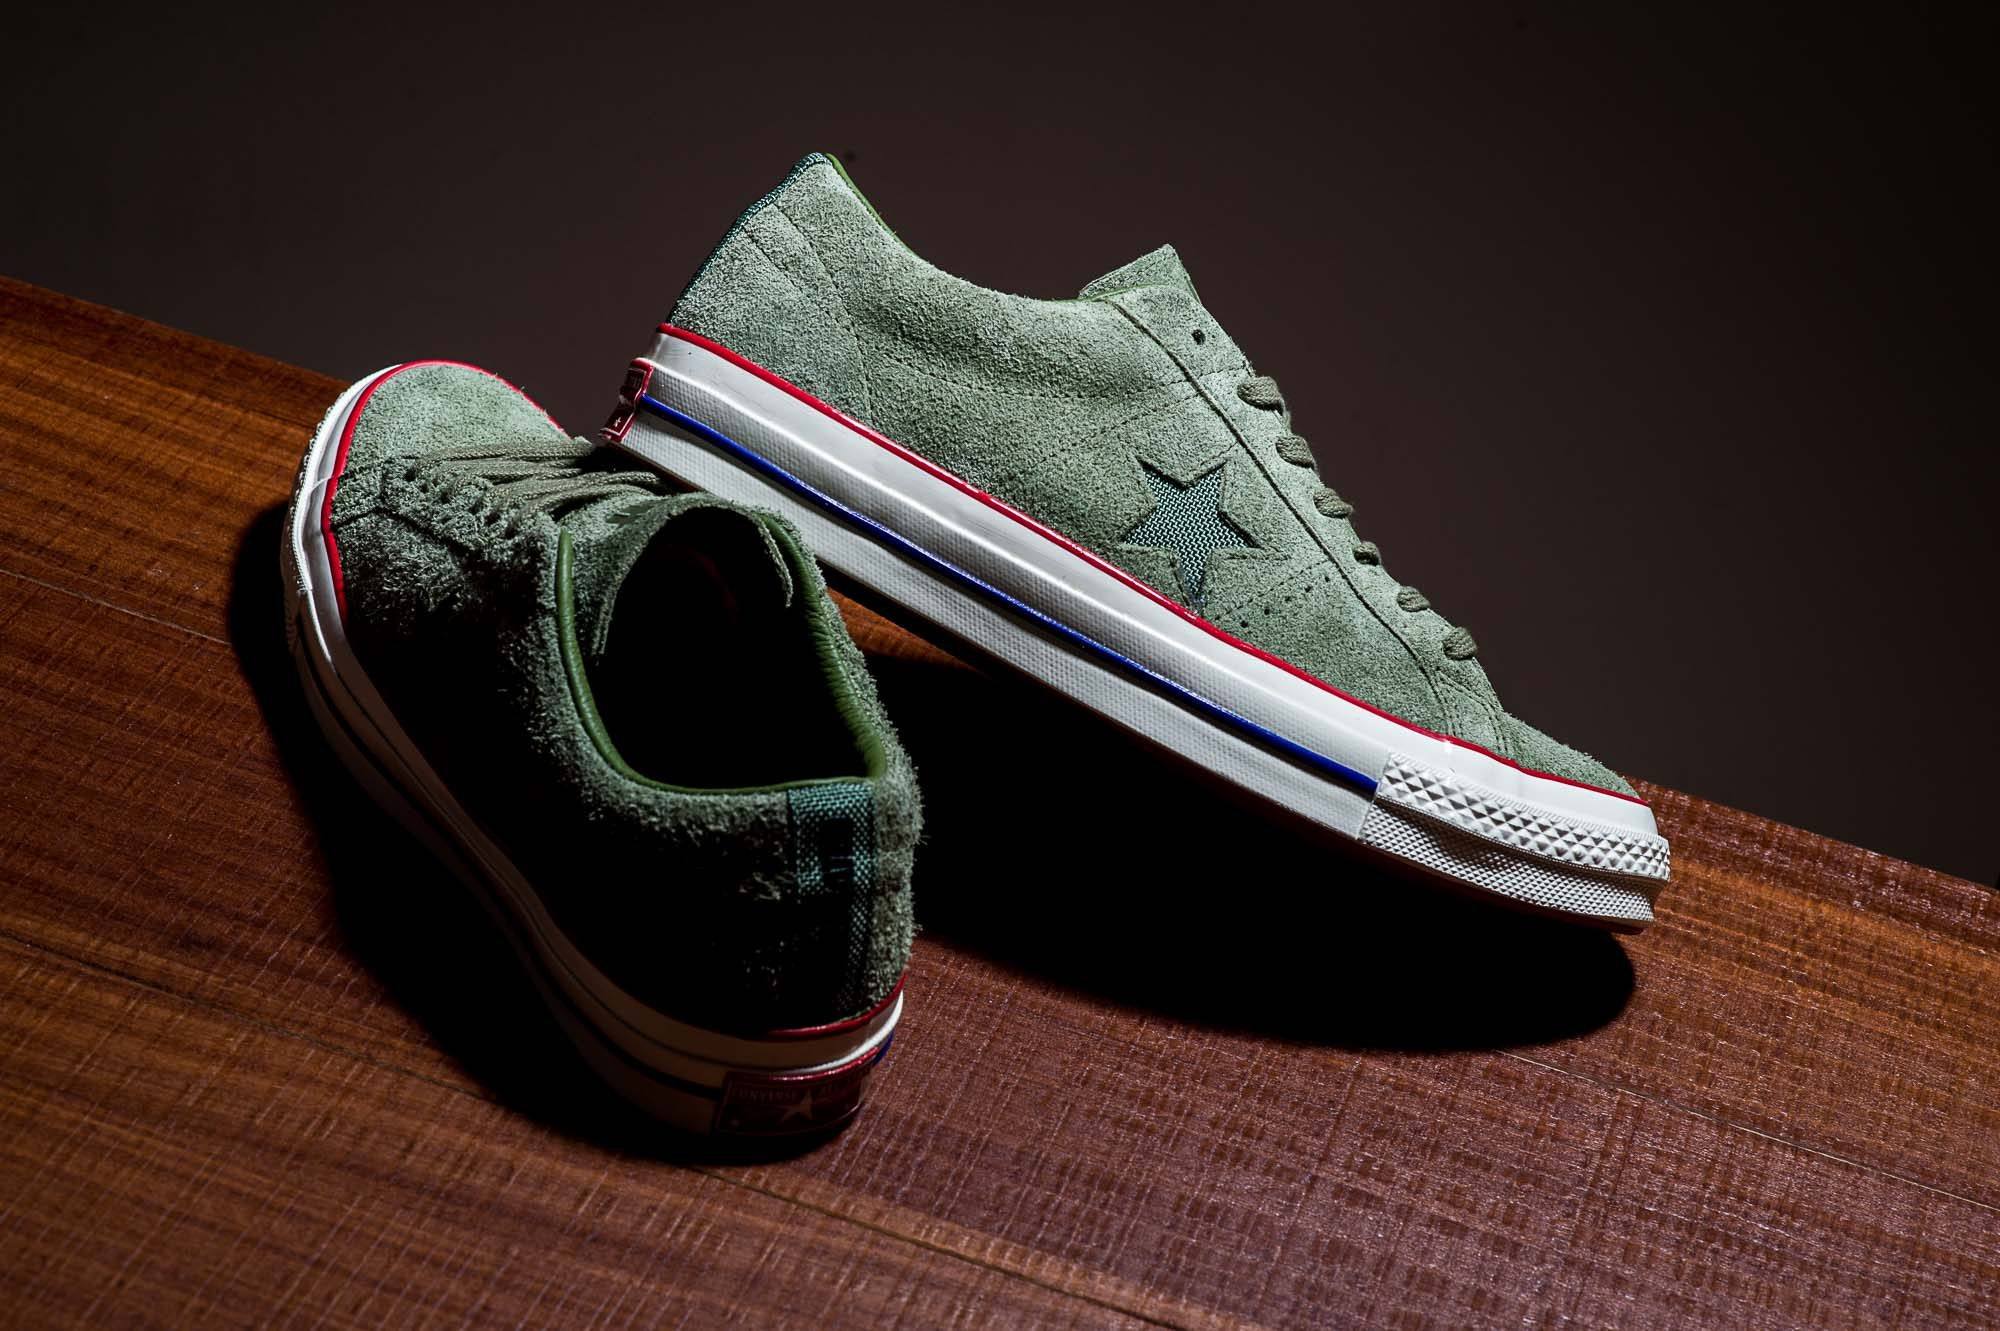 converse-onestar-74-undefeated-undftd-collaboration-10